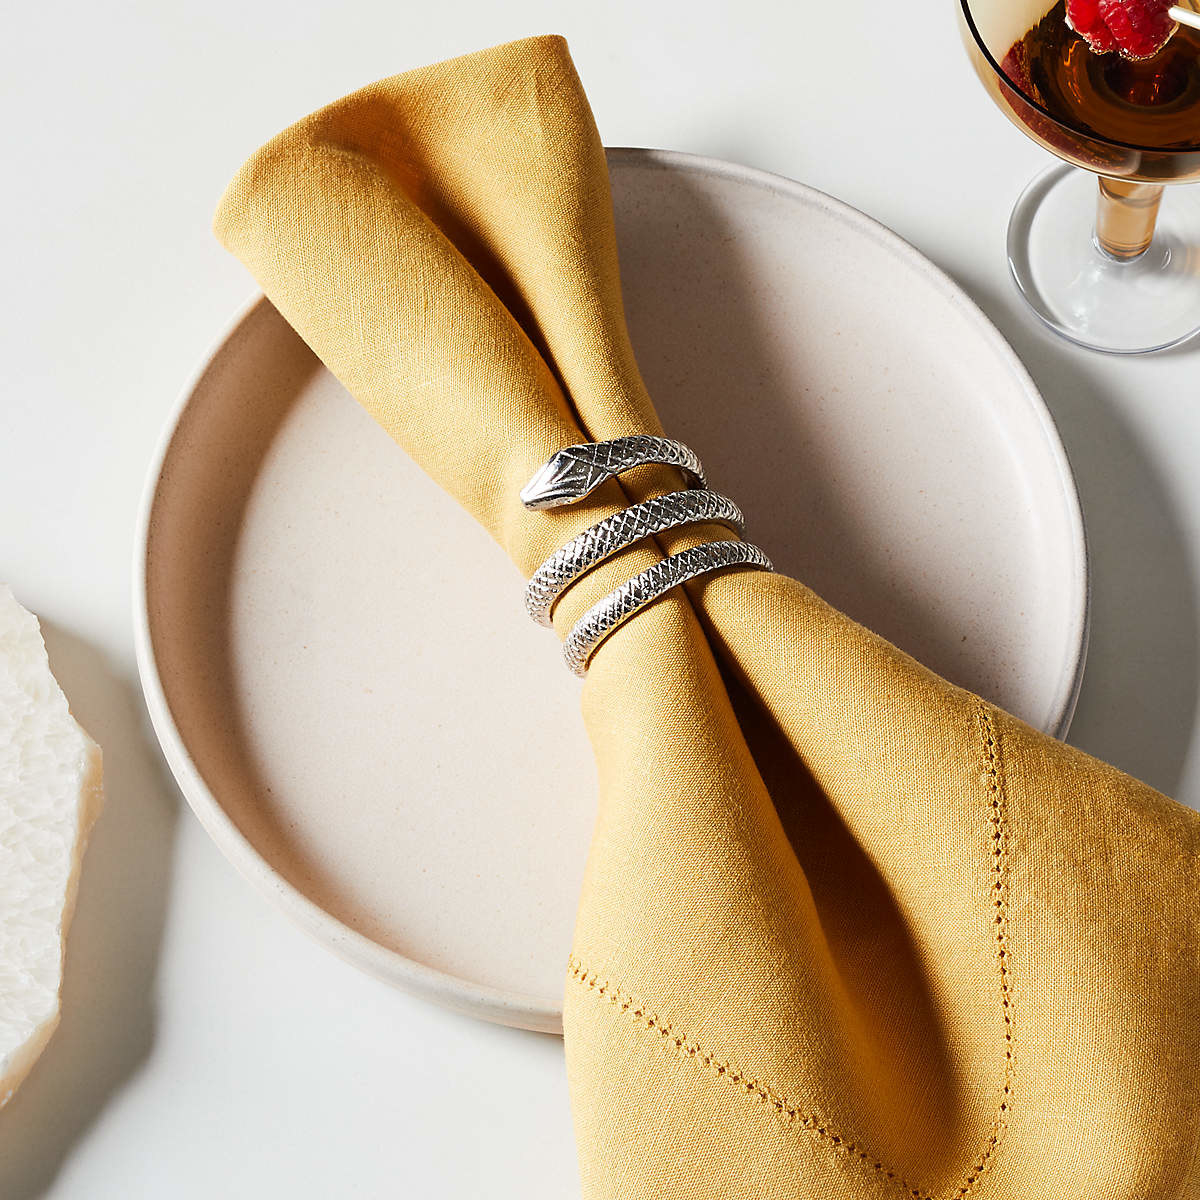 the silver snake-shaped napkin ring on a gold napkin